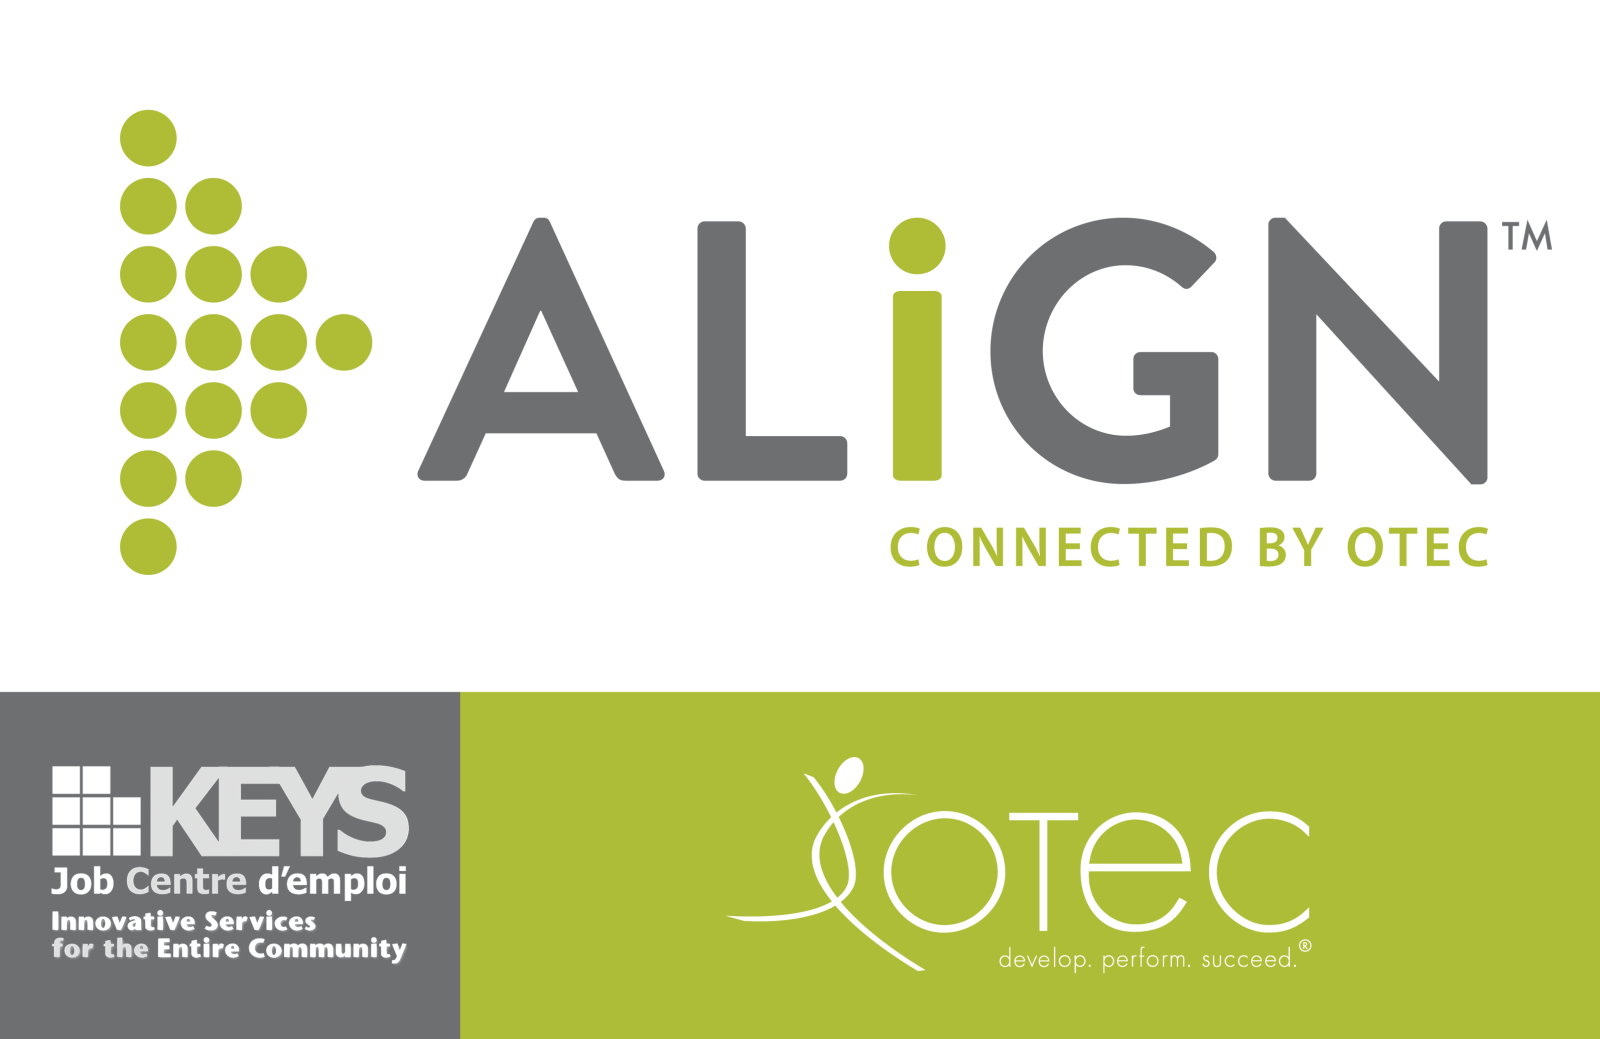 ALiGN Network - OTEC and KEYS Job Centre